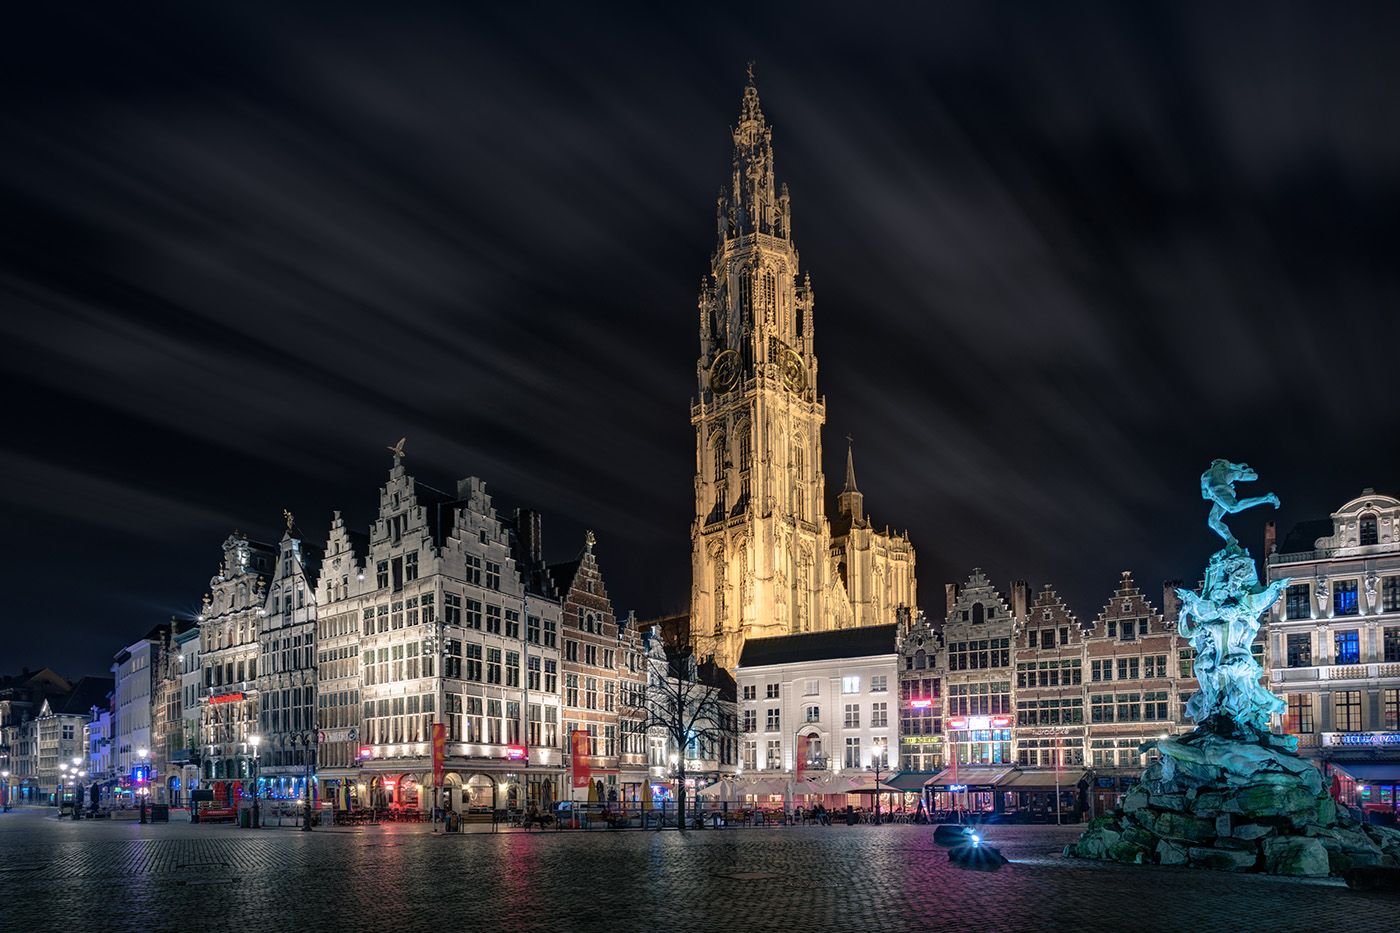 Kathedraal & grote markt by night